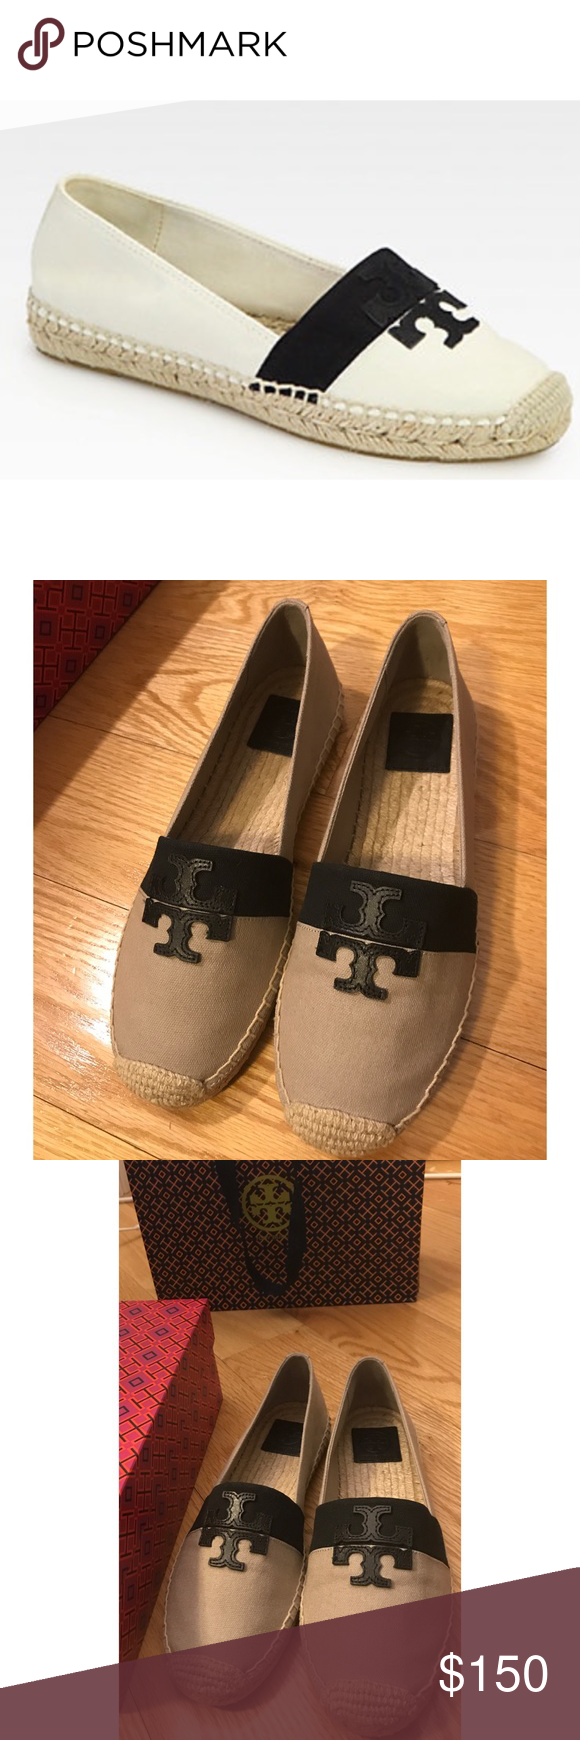 e87f6b7d345 NWB Tory Burch Weston Canvas  amp  Leather Espadrilles Brand new in box Tory  Burch Weston